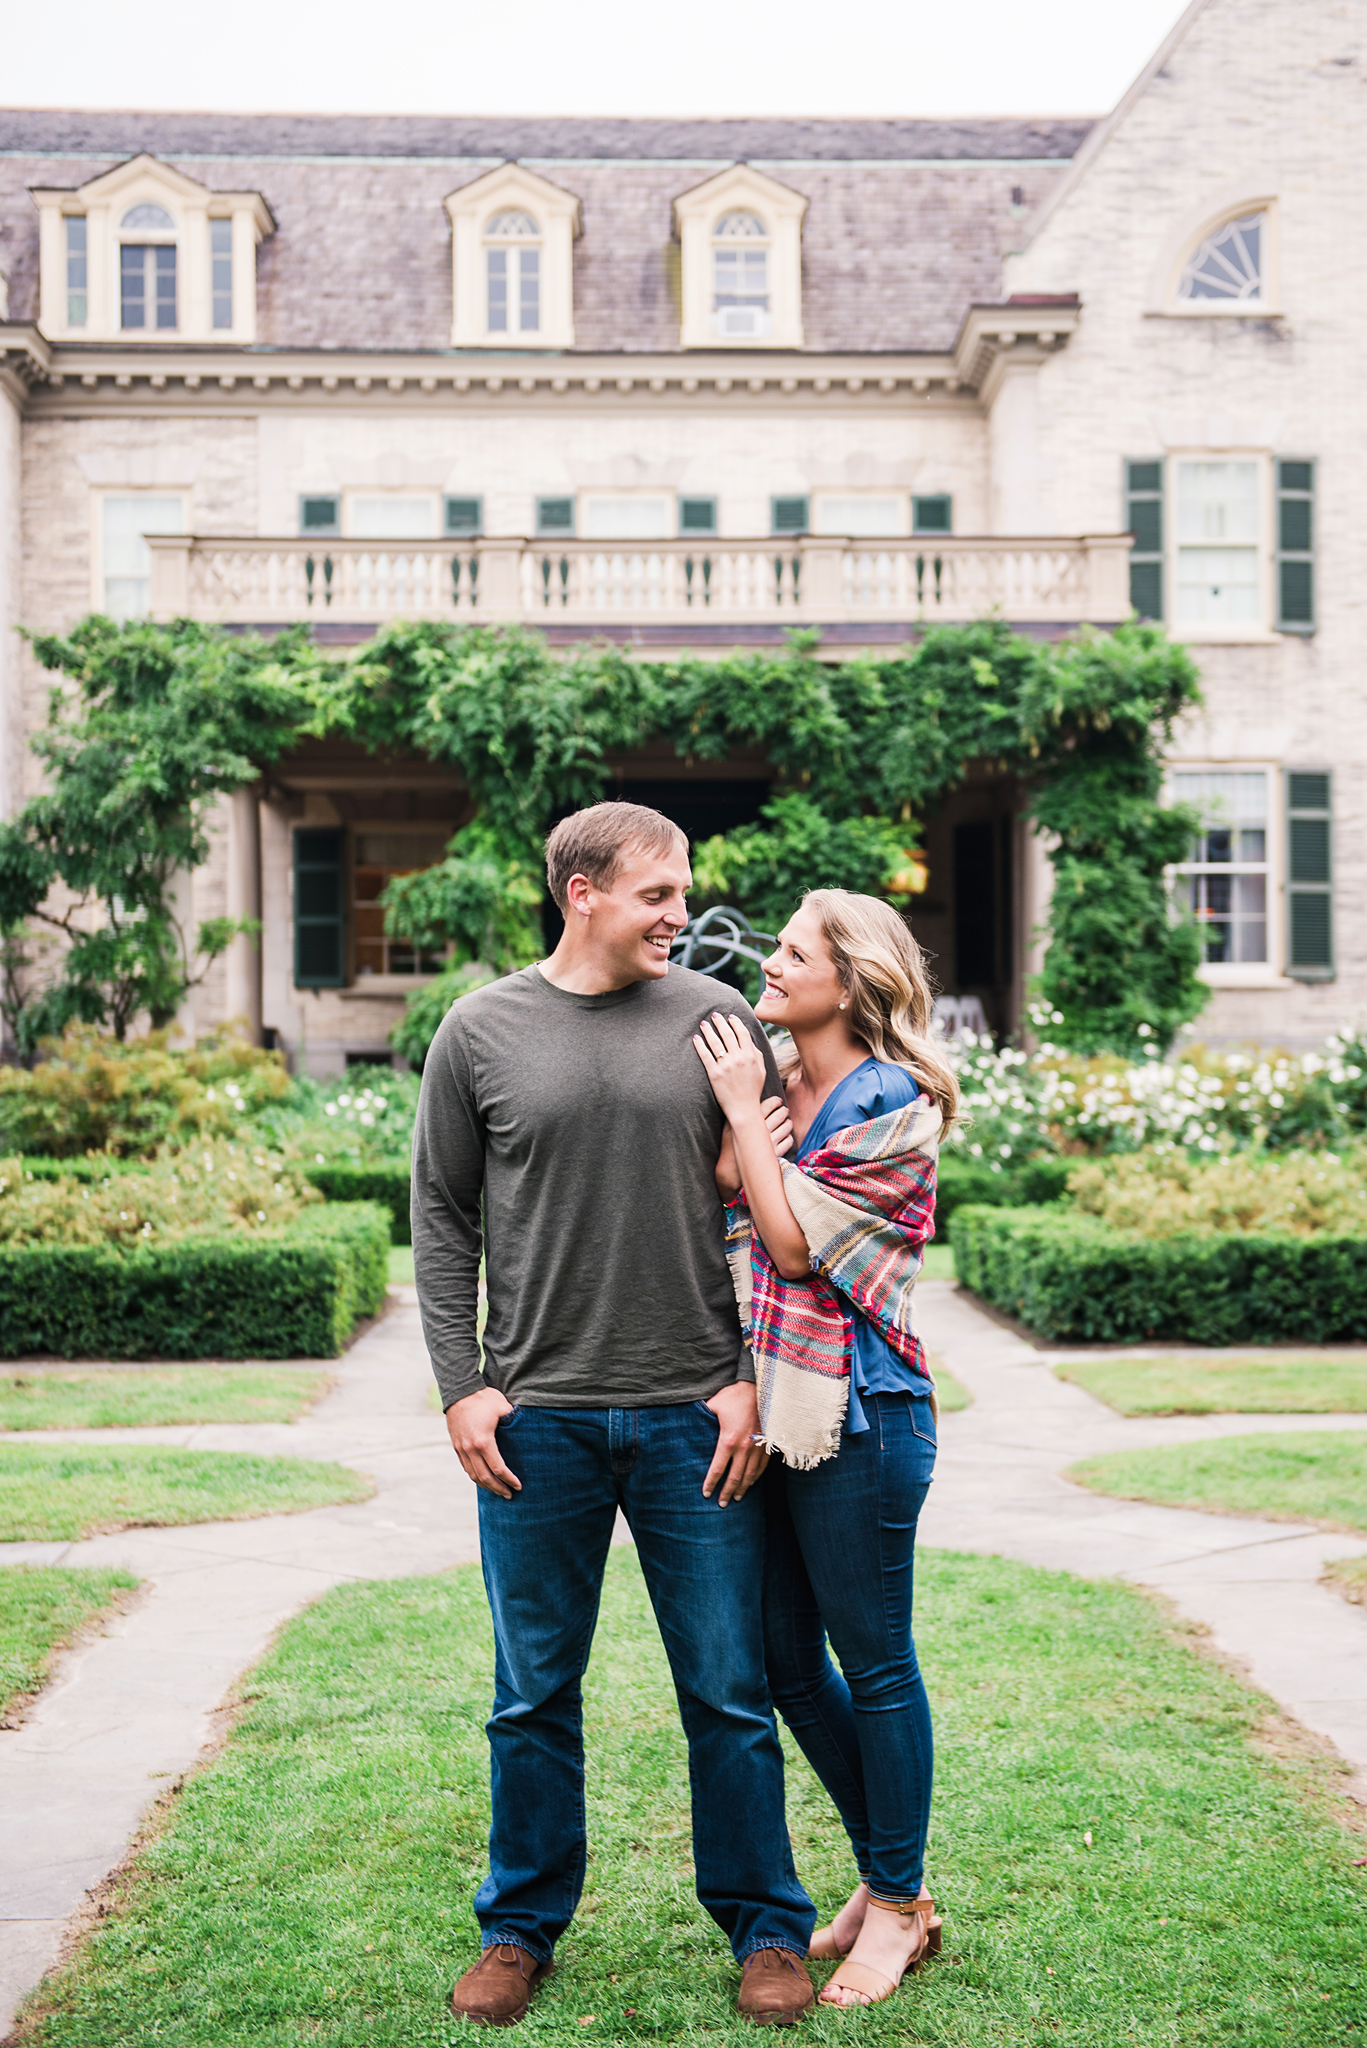 George_Eastman_House_Rochester_Yacht_Club_Rochester_Engagement_Session_JILL_STUDIO_Rochester_NY_Photographer_DSC_7999.jpg